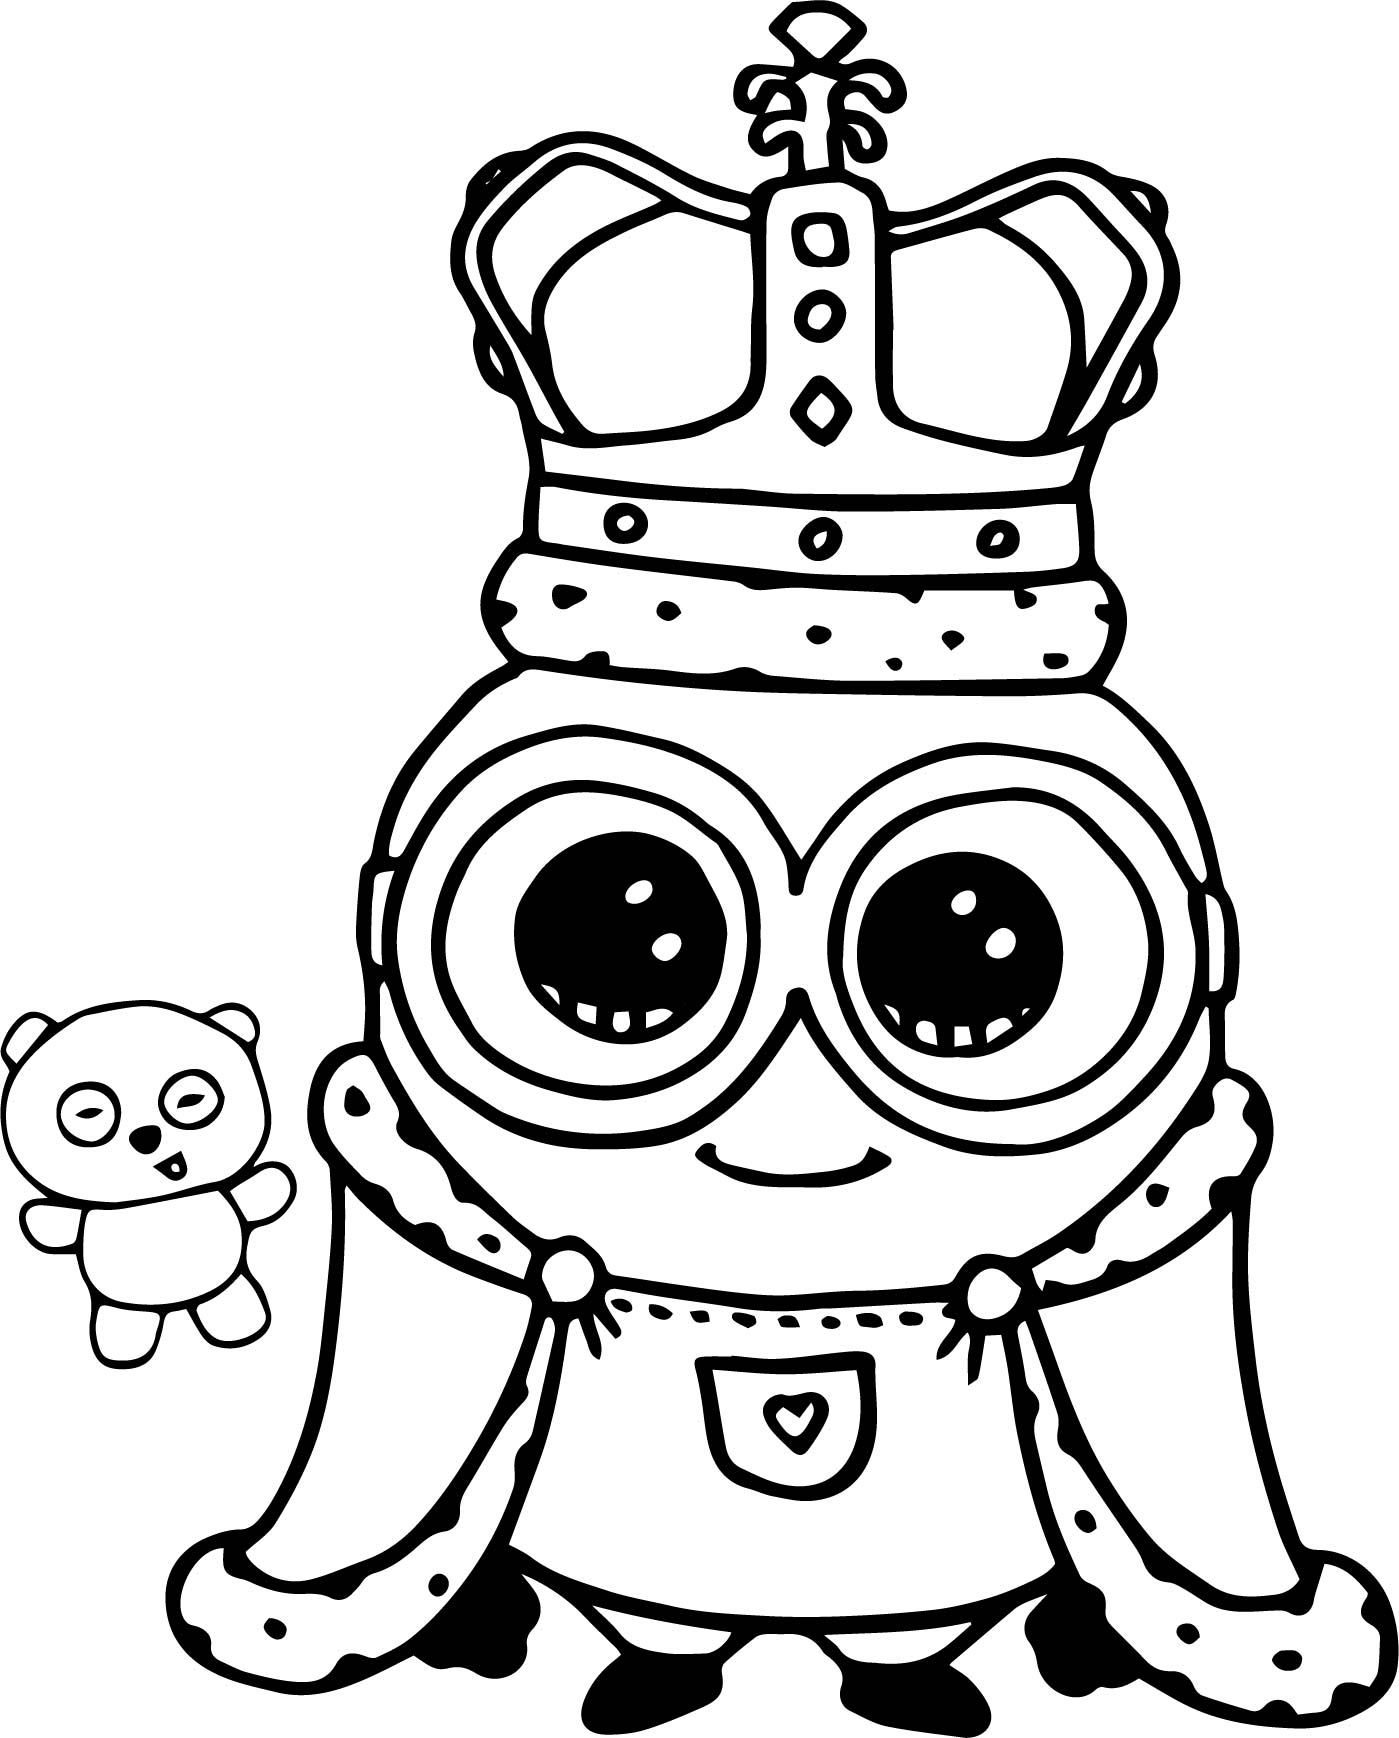 Minion king bob cute coloring page for Draw so cute coloring pages